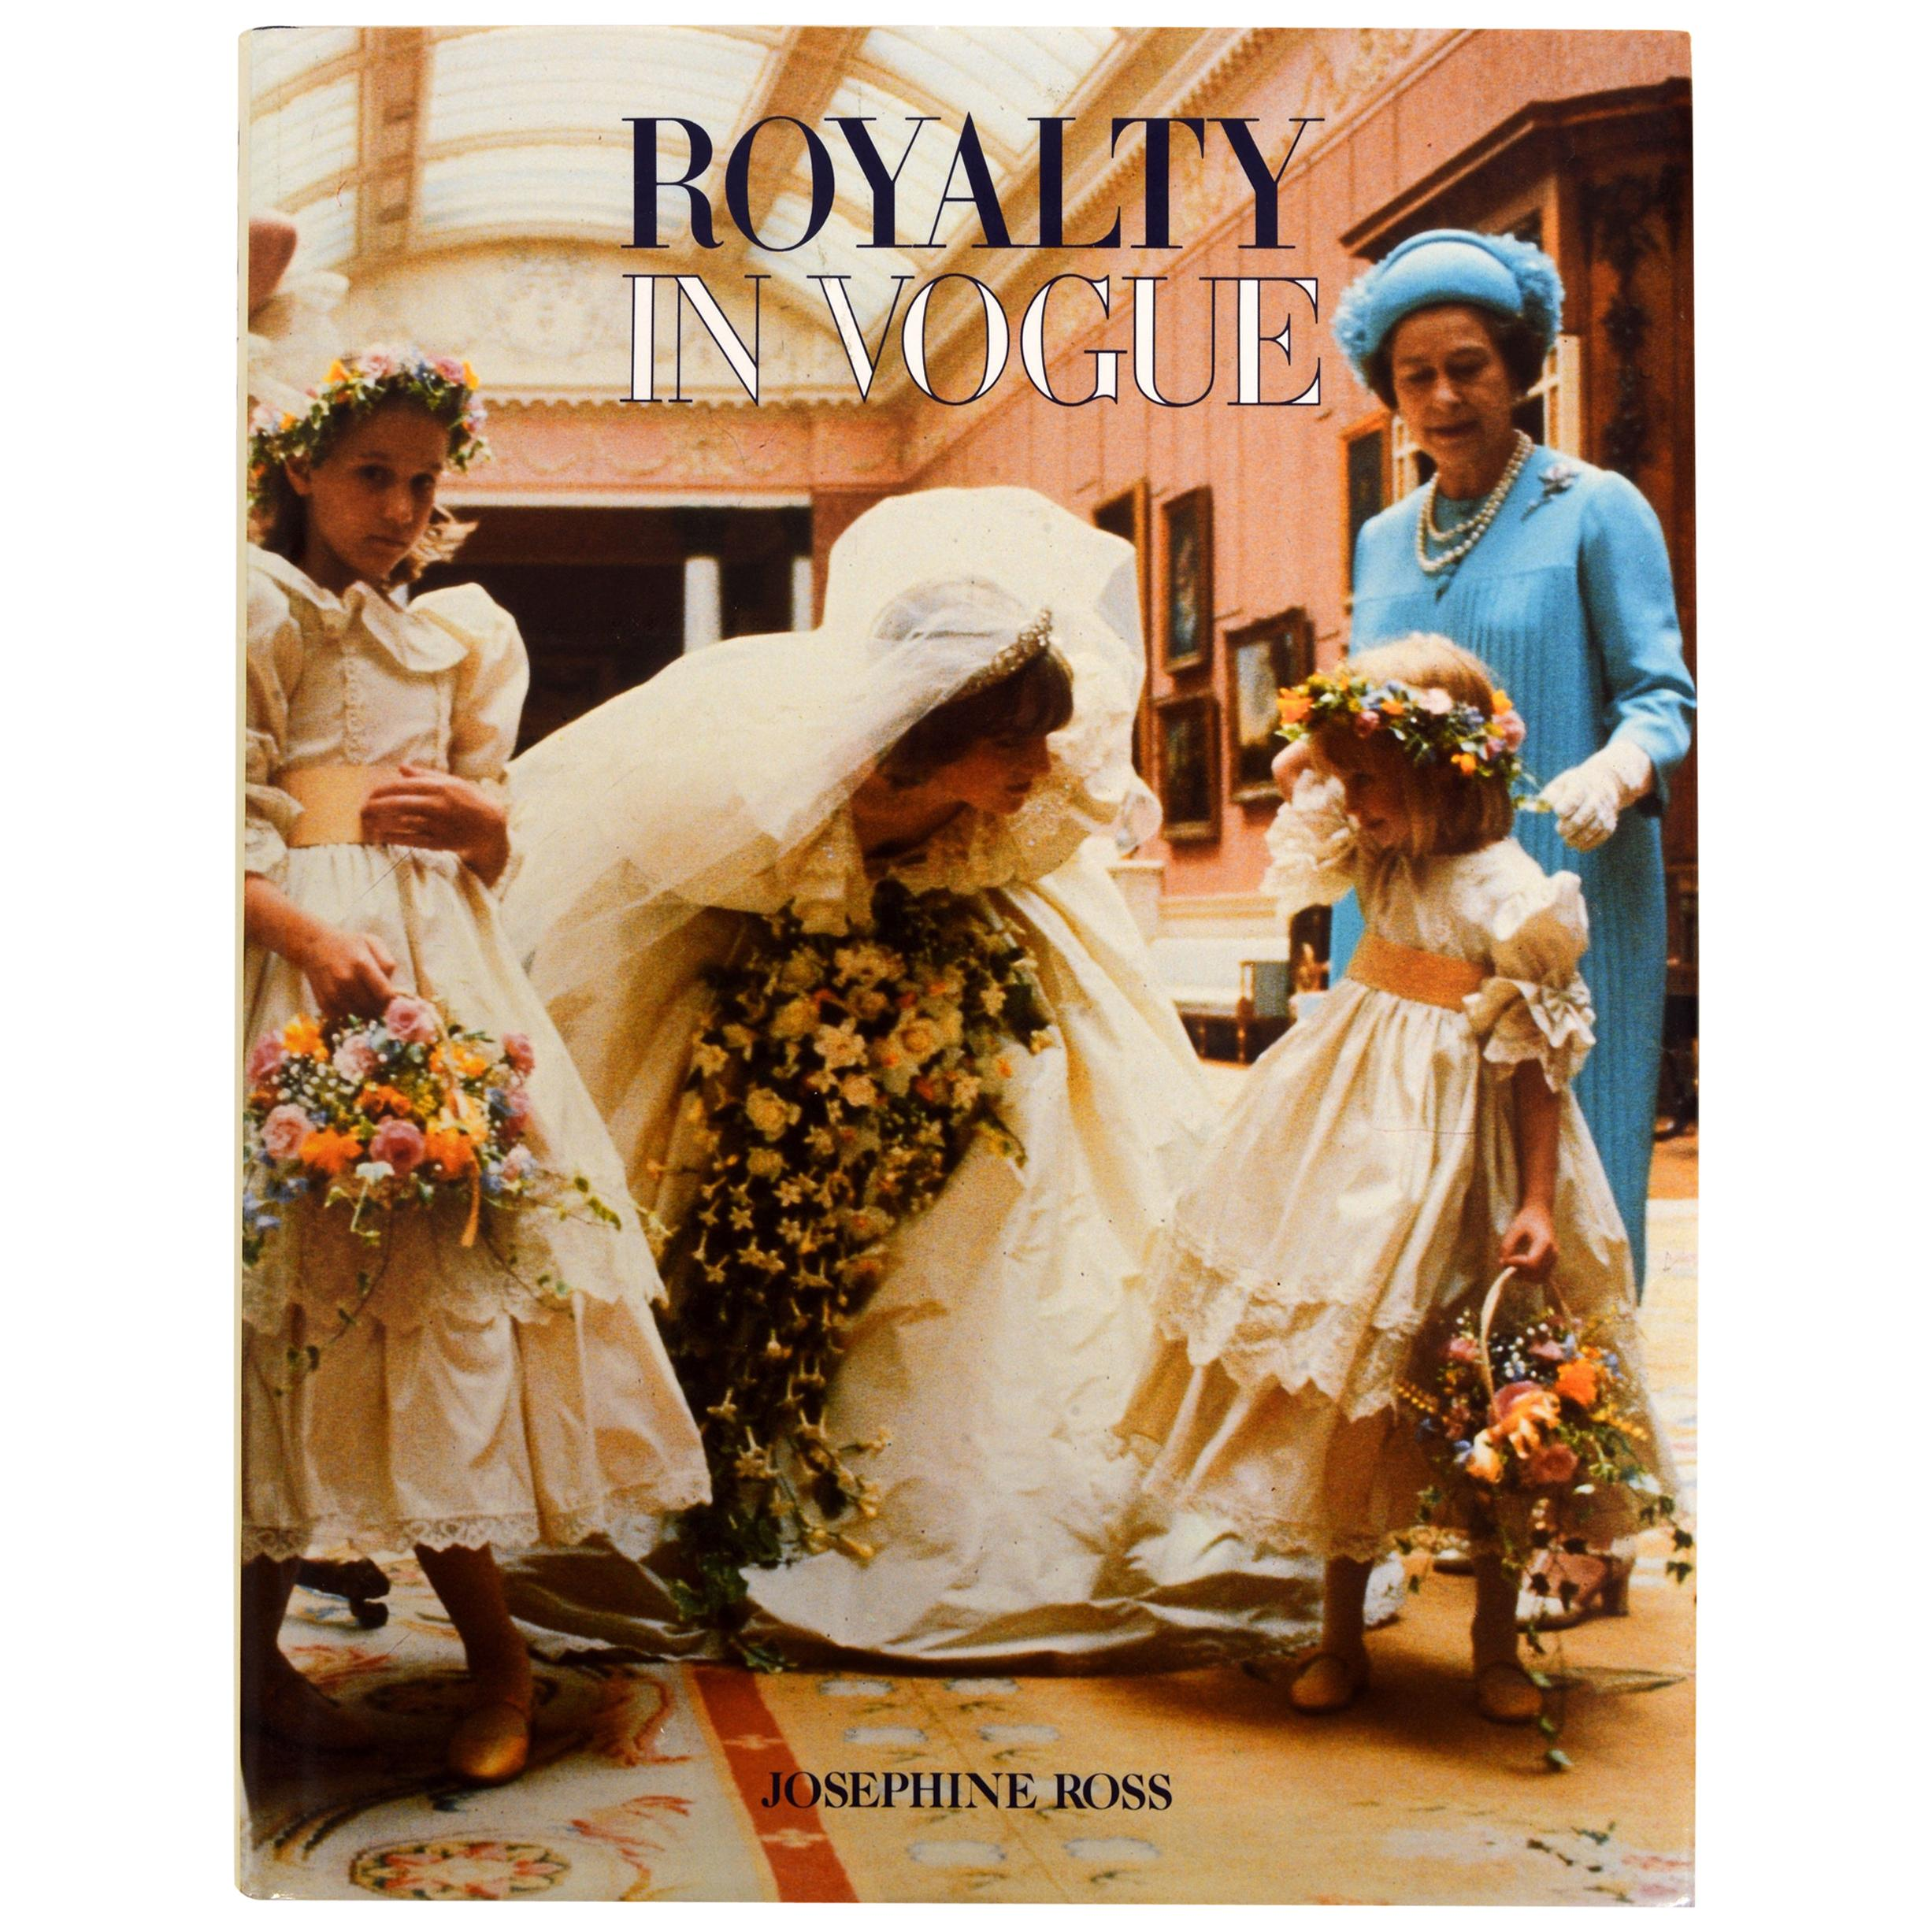 Royalty in Vogue by Josephine Ross, 1st Edition